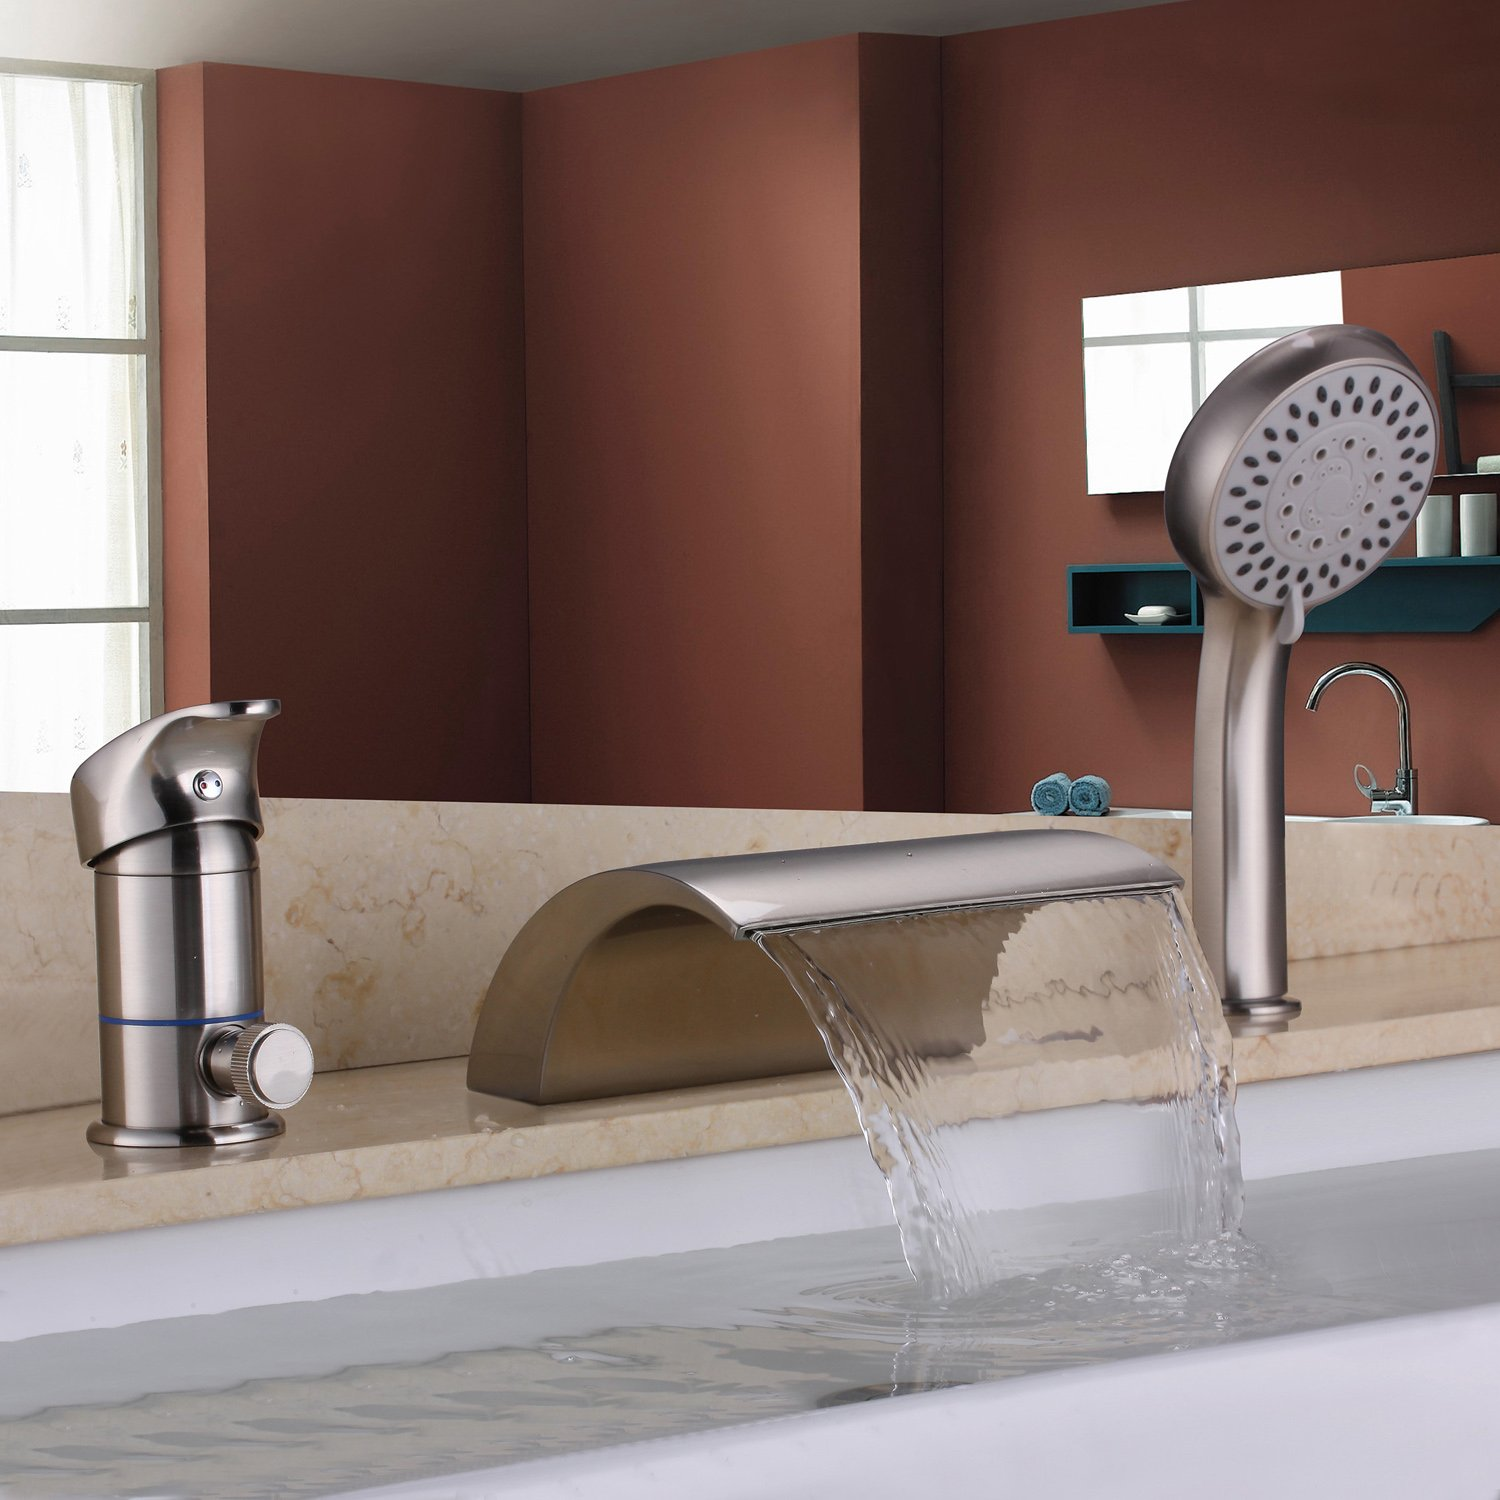 Delightful Hiendure Waterfall Solid Brass Roman Tub Faucet Set With Hand Shower,  Brushed Nickel     Amazon.com